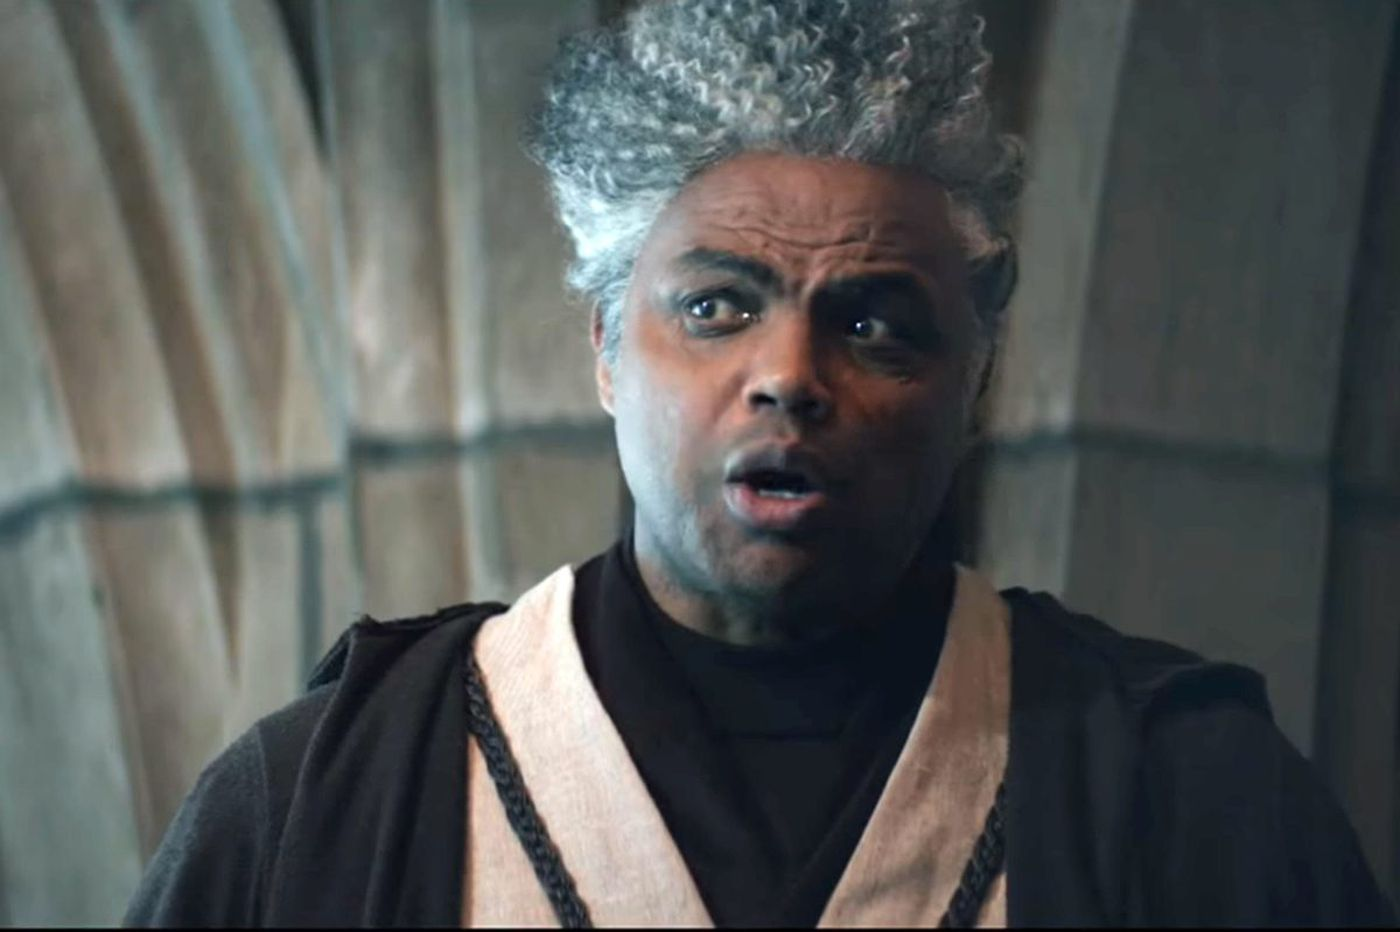 'Saturday Night Live': Charles Barkley's funniest sketch got cut from the broadcast